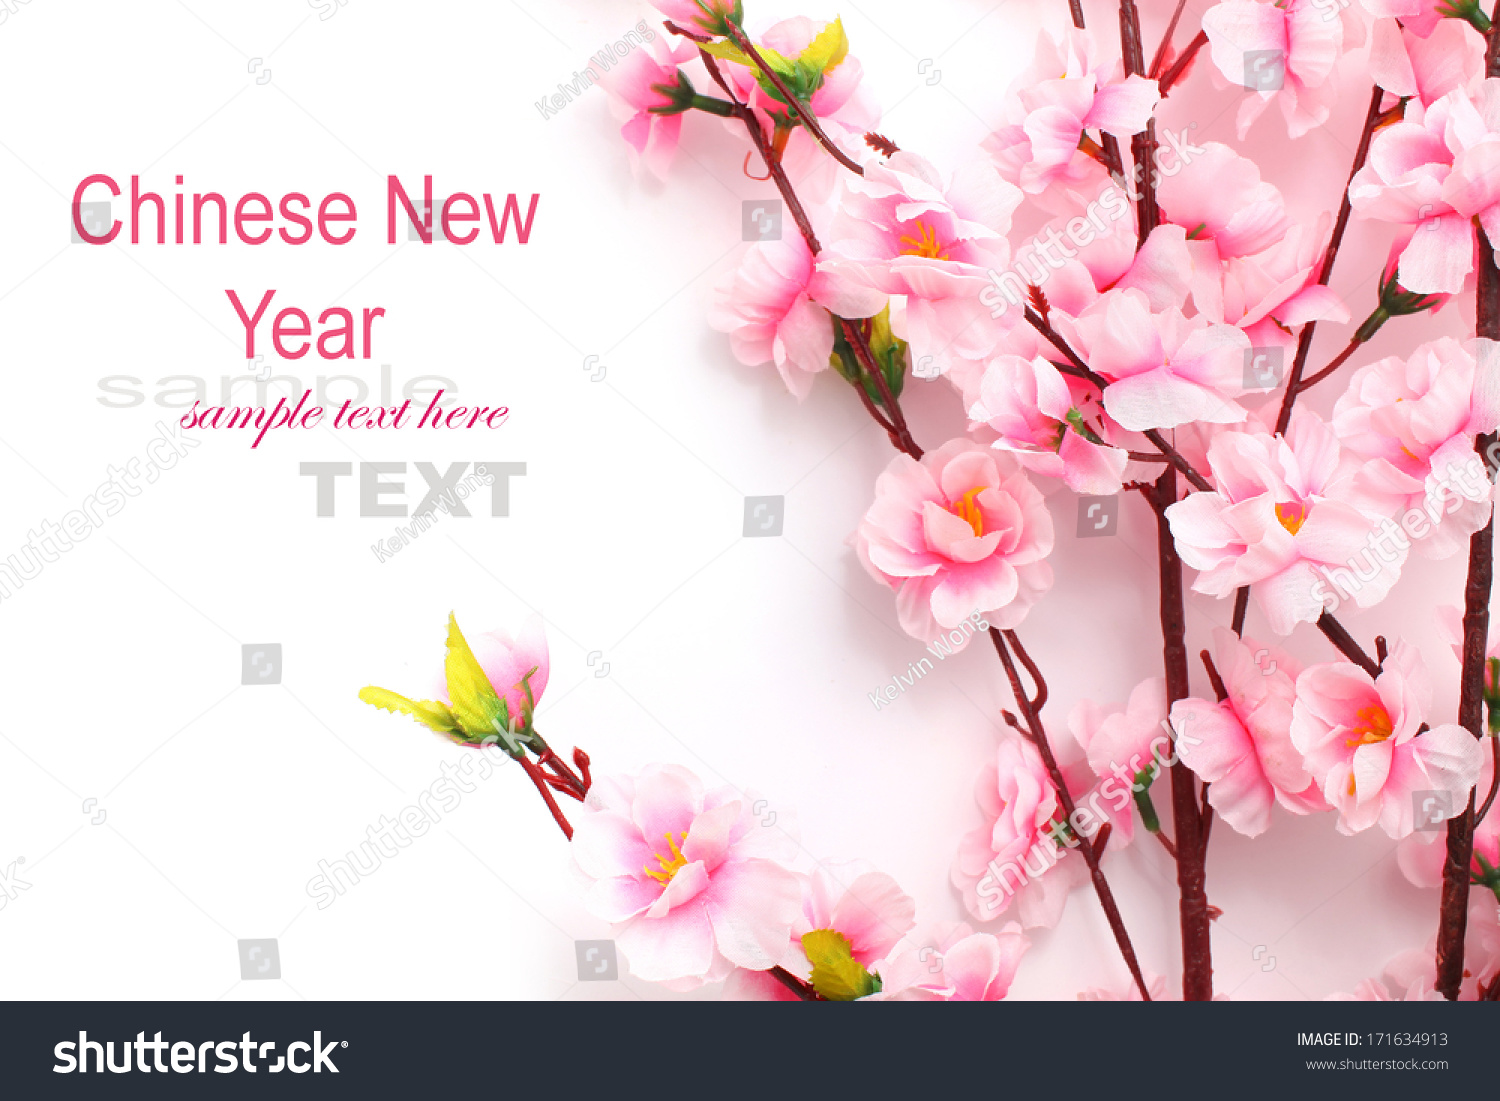 plum flowers blossom on white background good for chinese new year use ez canvas